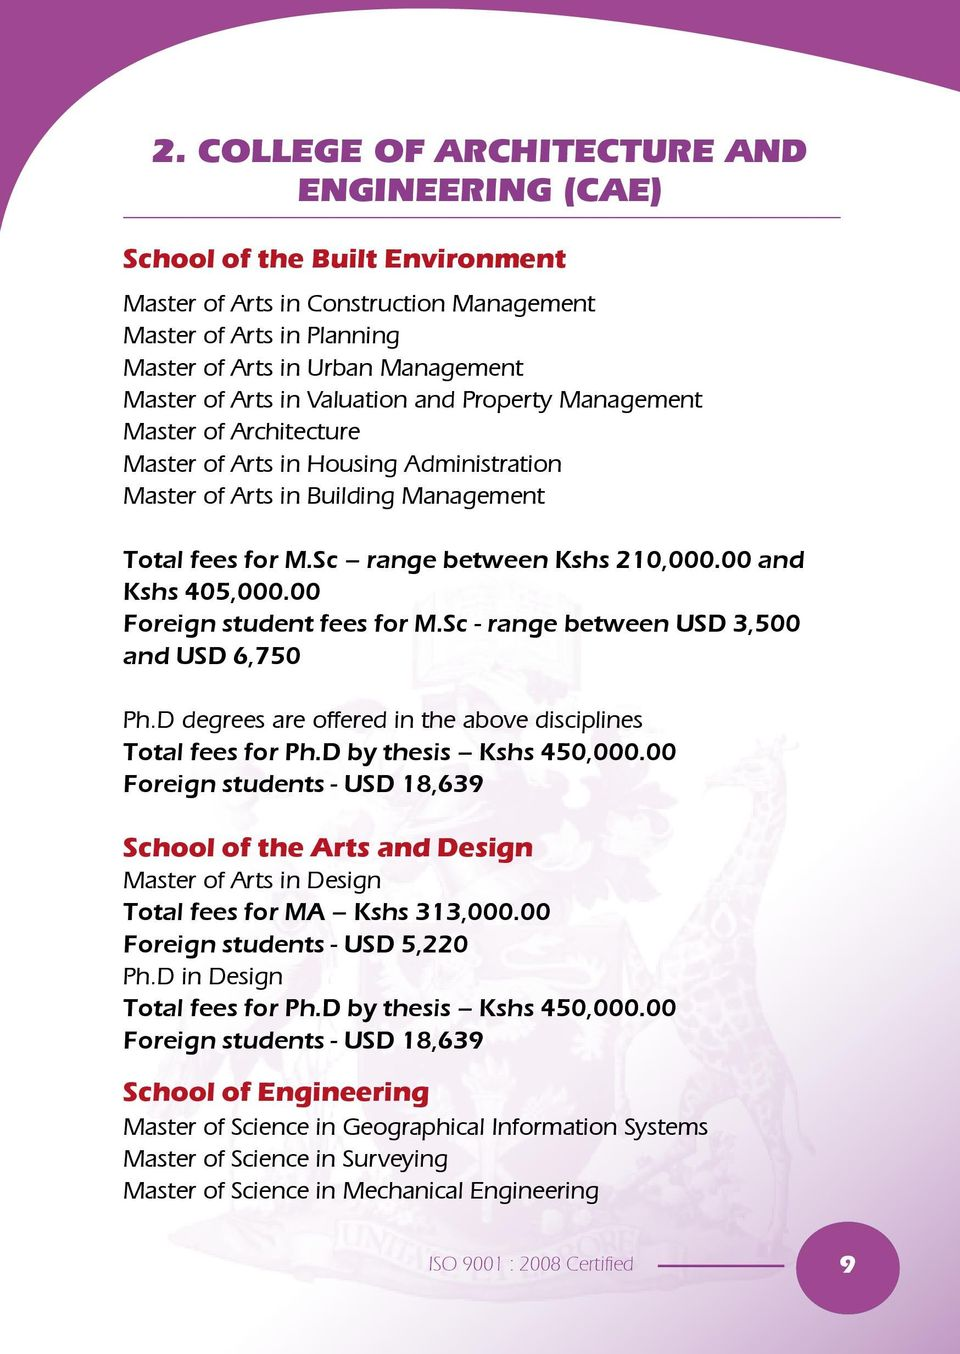 00 and Kshs 405,000.00 Foreign student fees for M.Sc - range between USD 3,500 and USD 6,750 Ph.